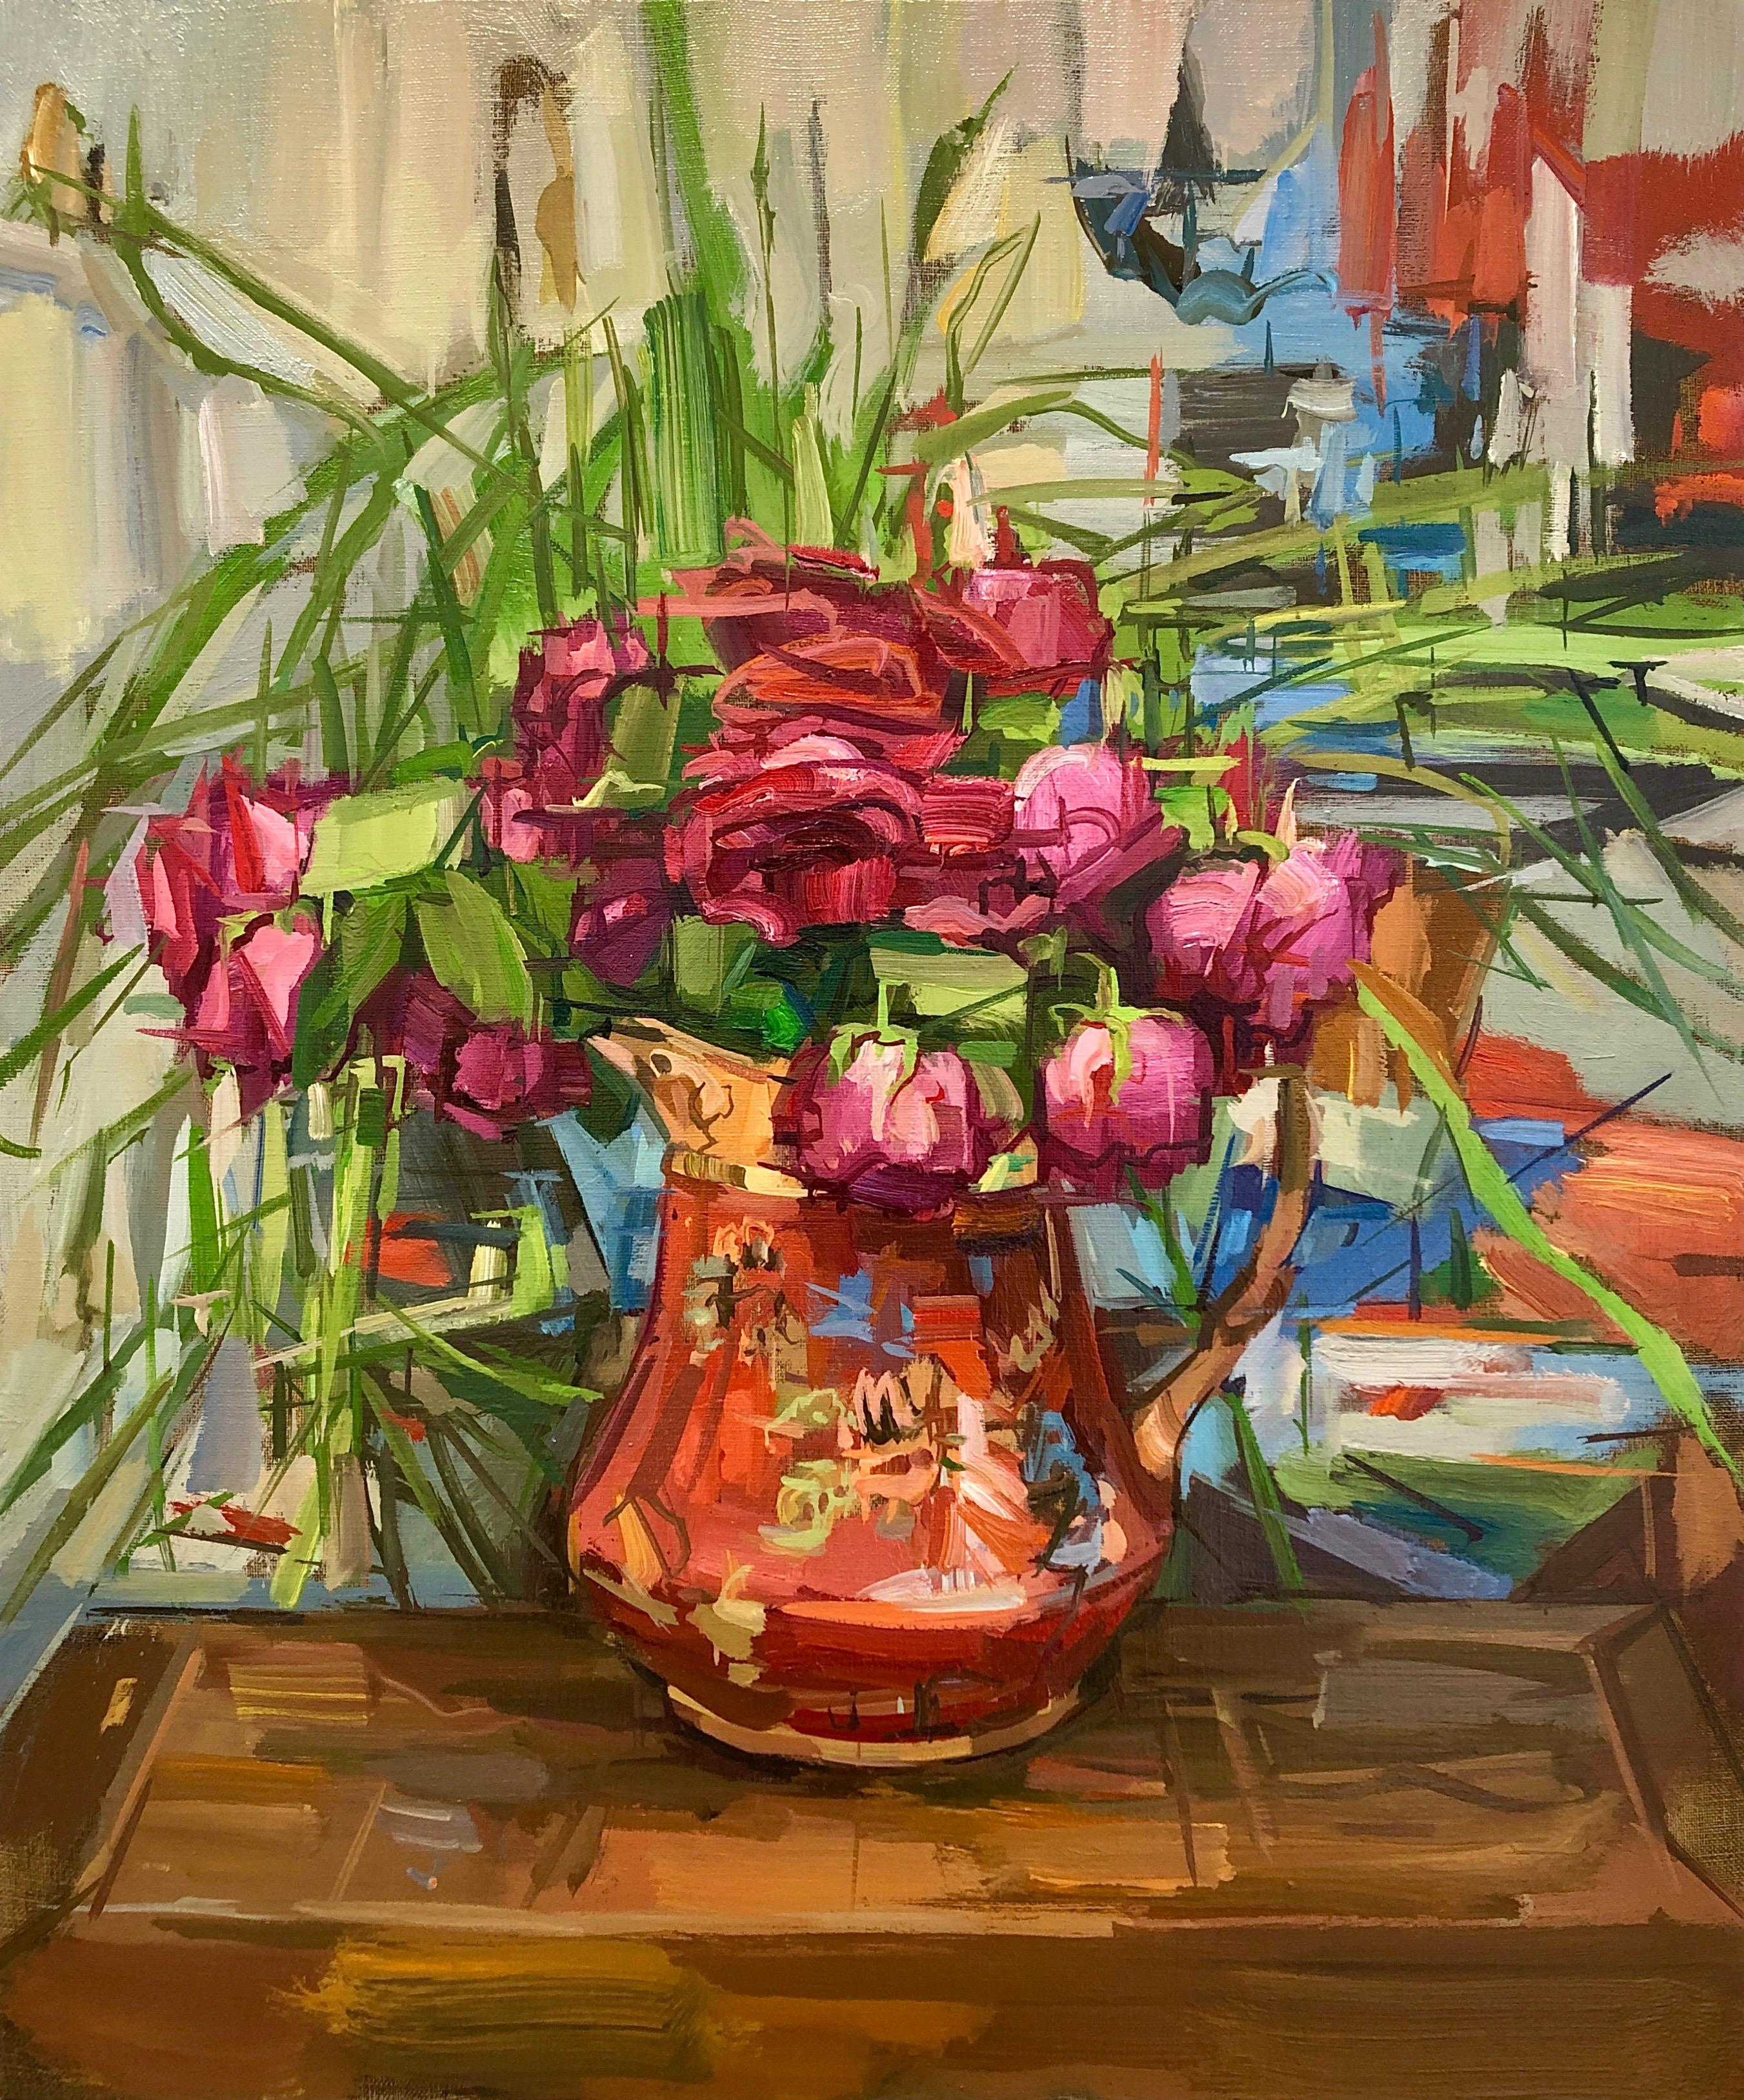 Roses, Botanical Still Life Interior Painting, Red, Pink Flowers, Floral Pitcher